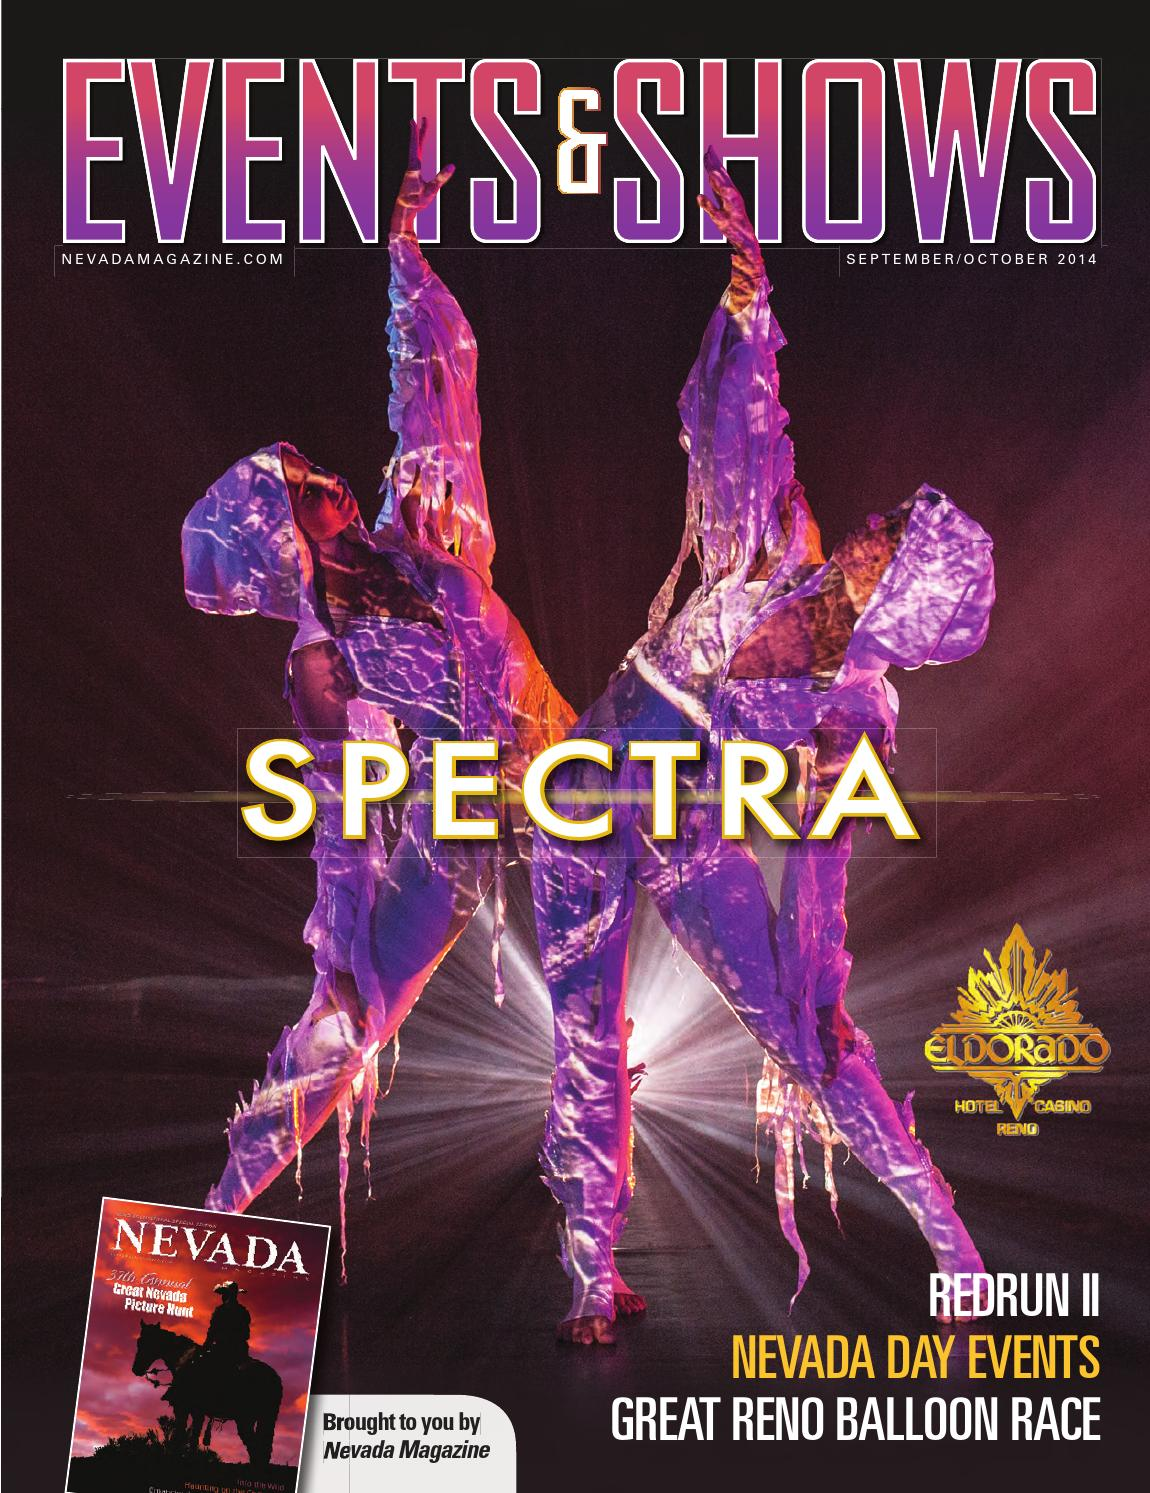 September/October 2014 StateWide Events & Shows by Nevada